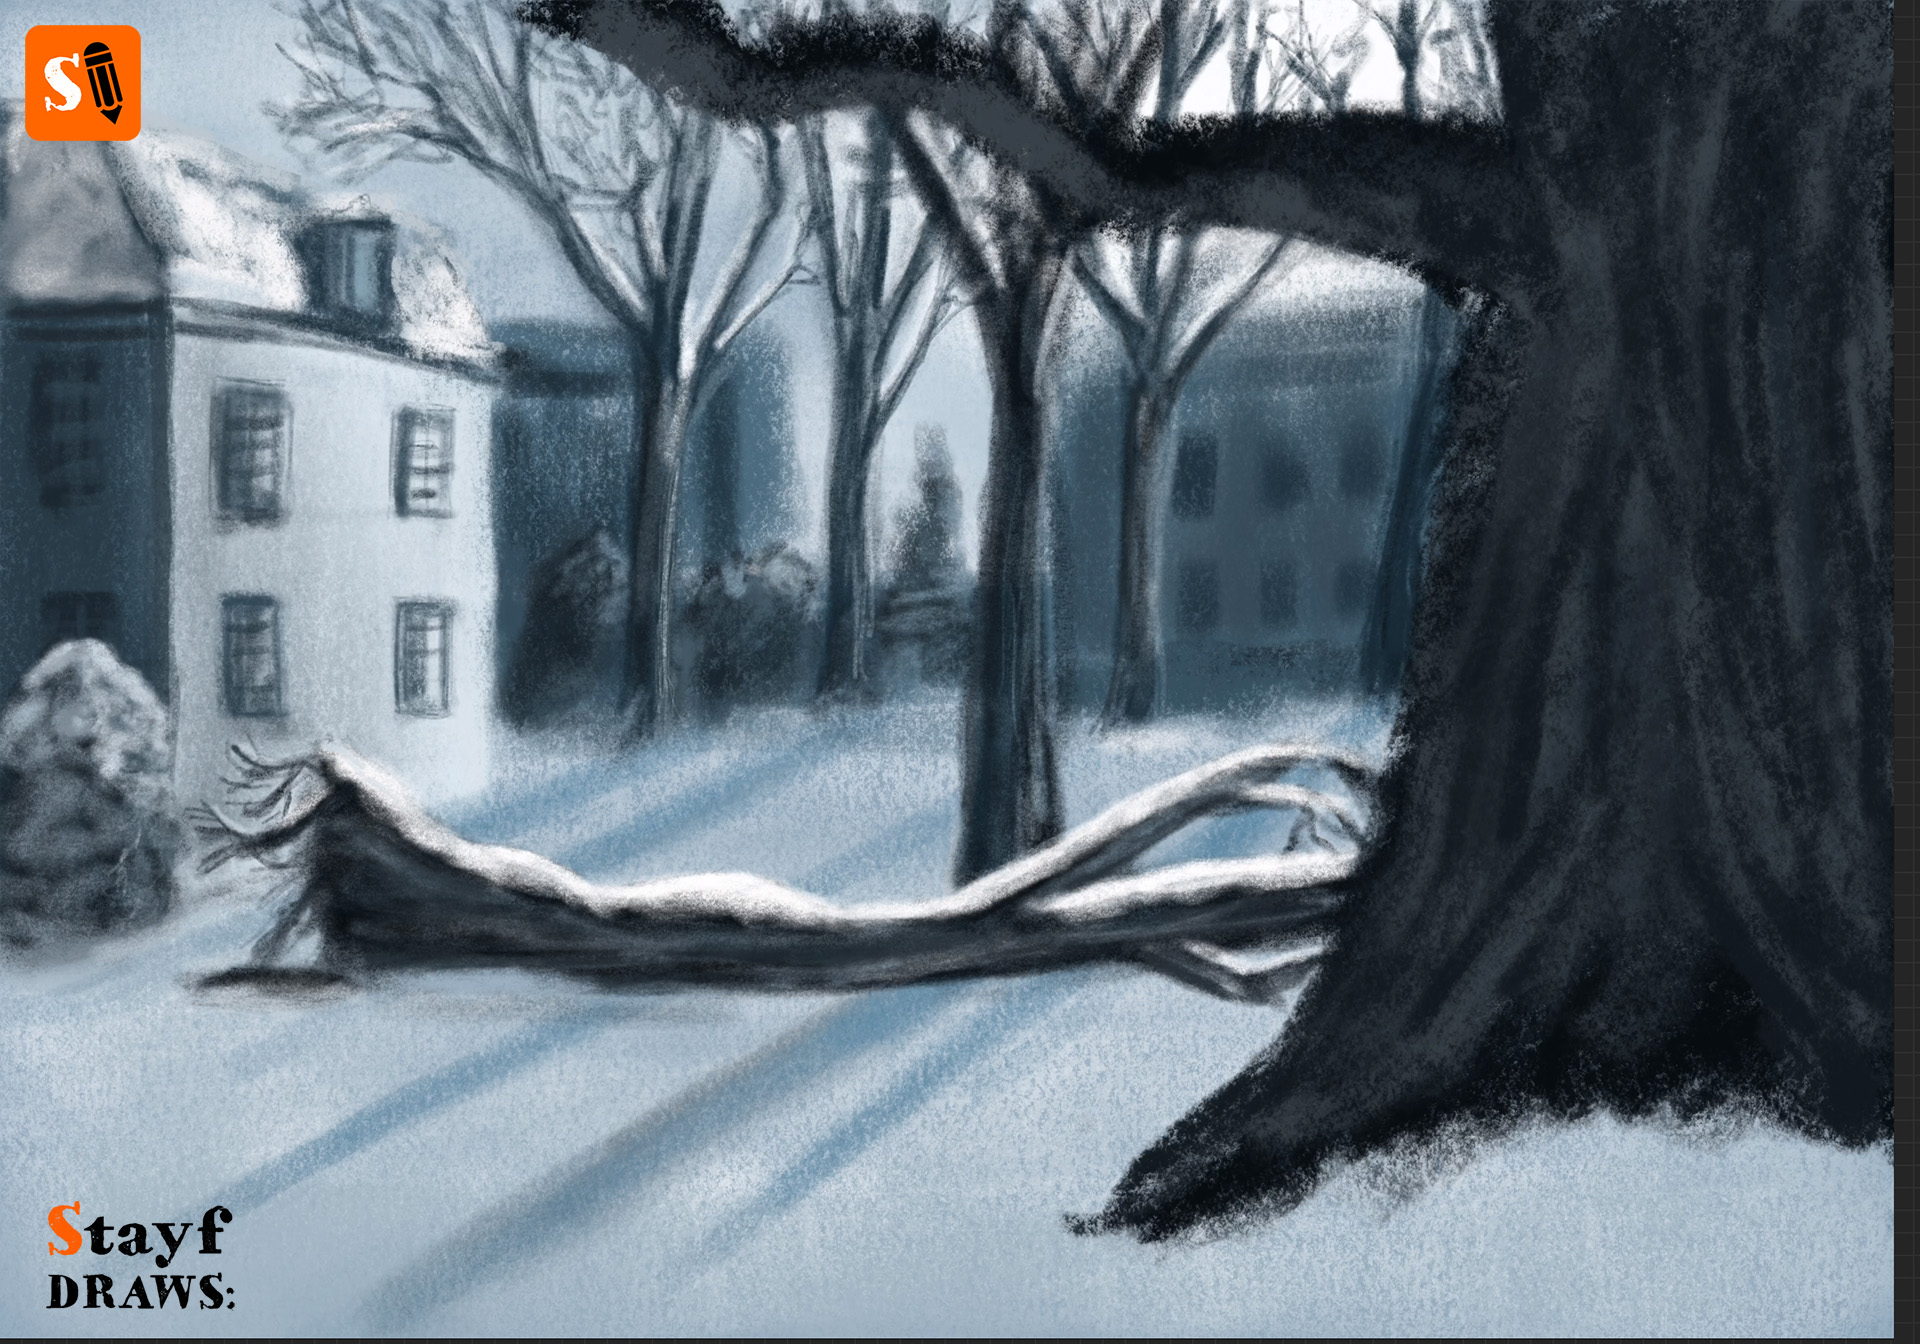 StayfDraws-Procreate-Pastels-Winterlandscape2